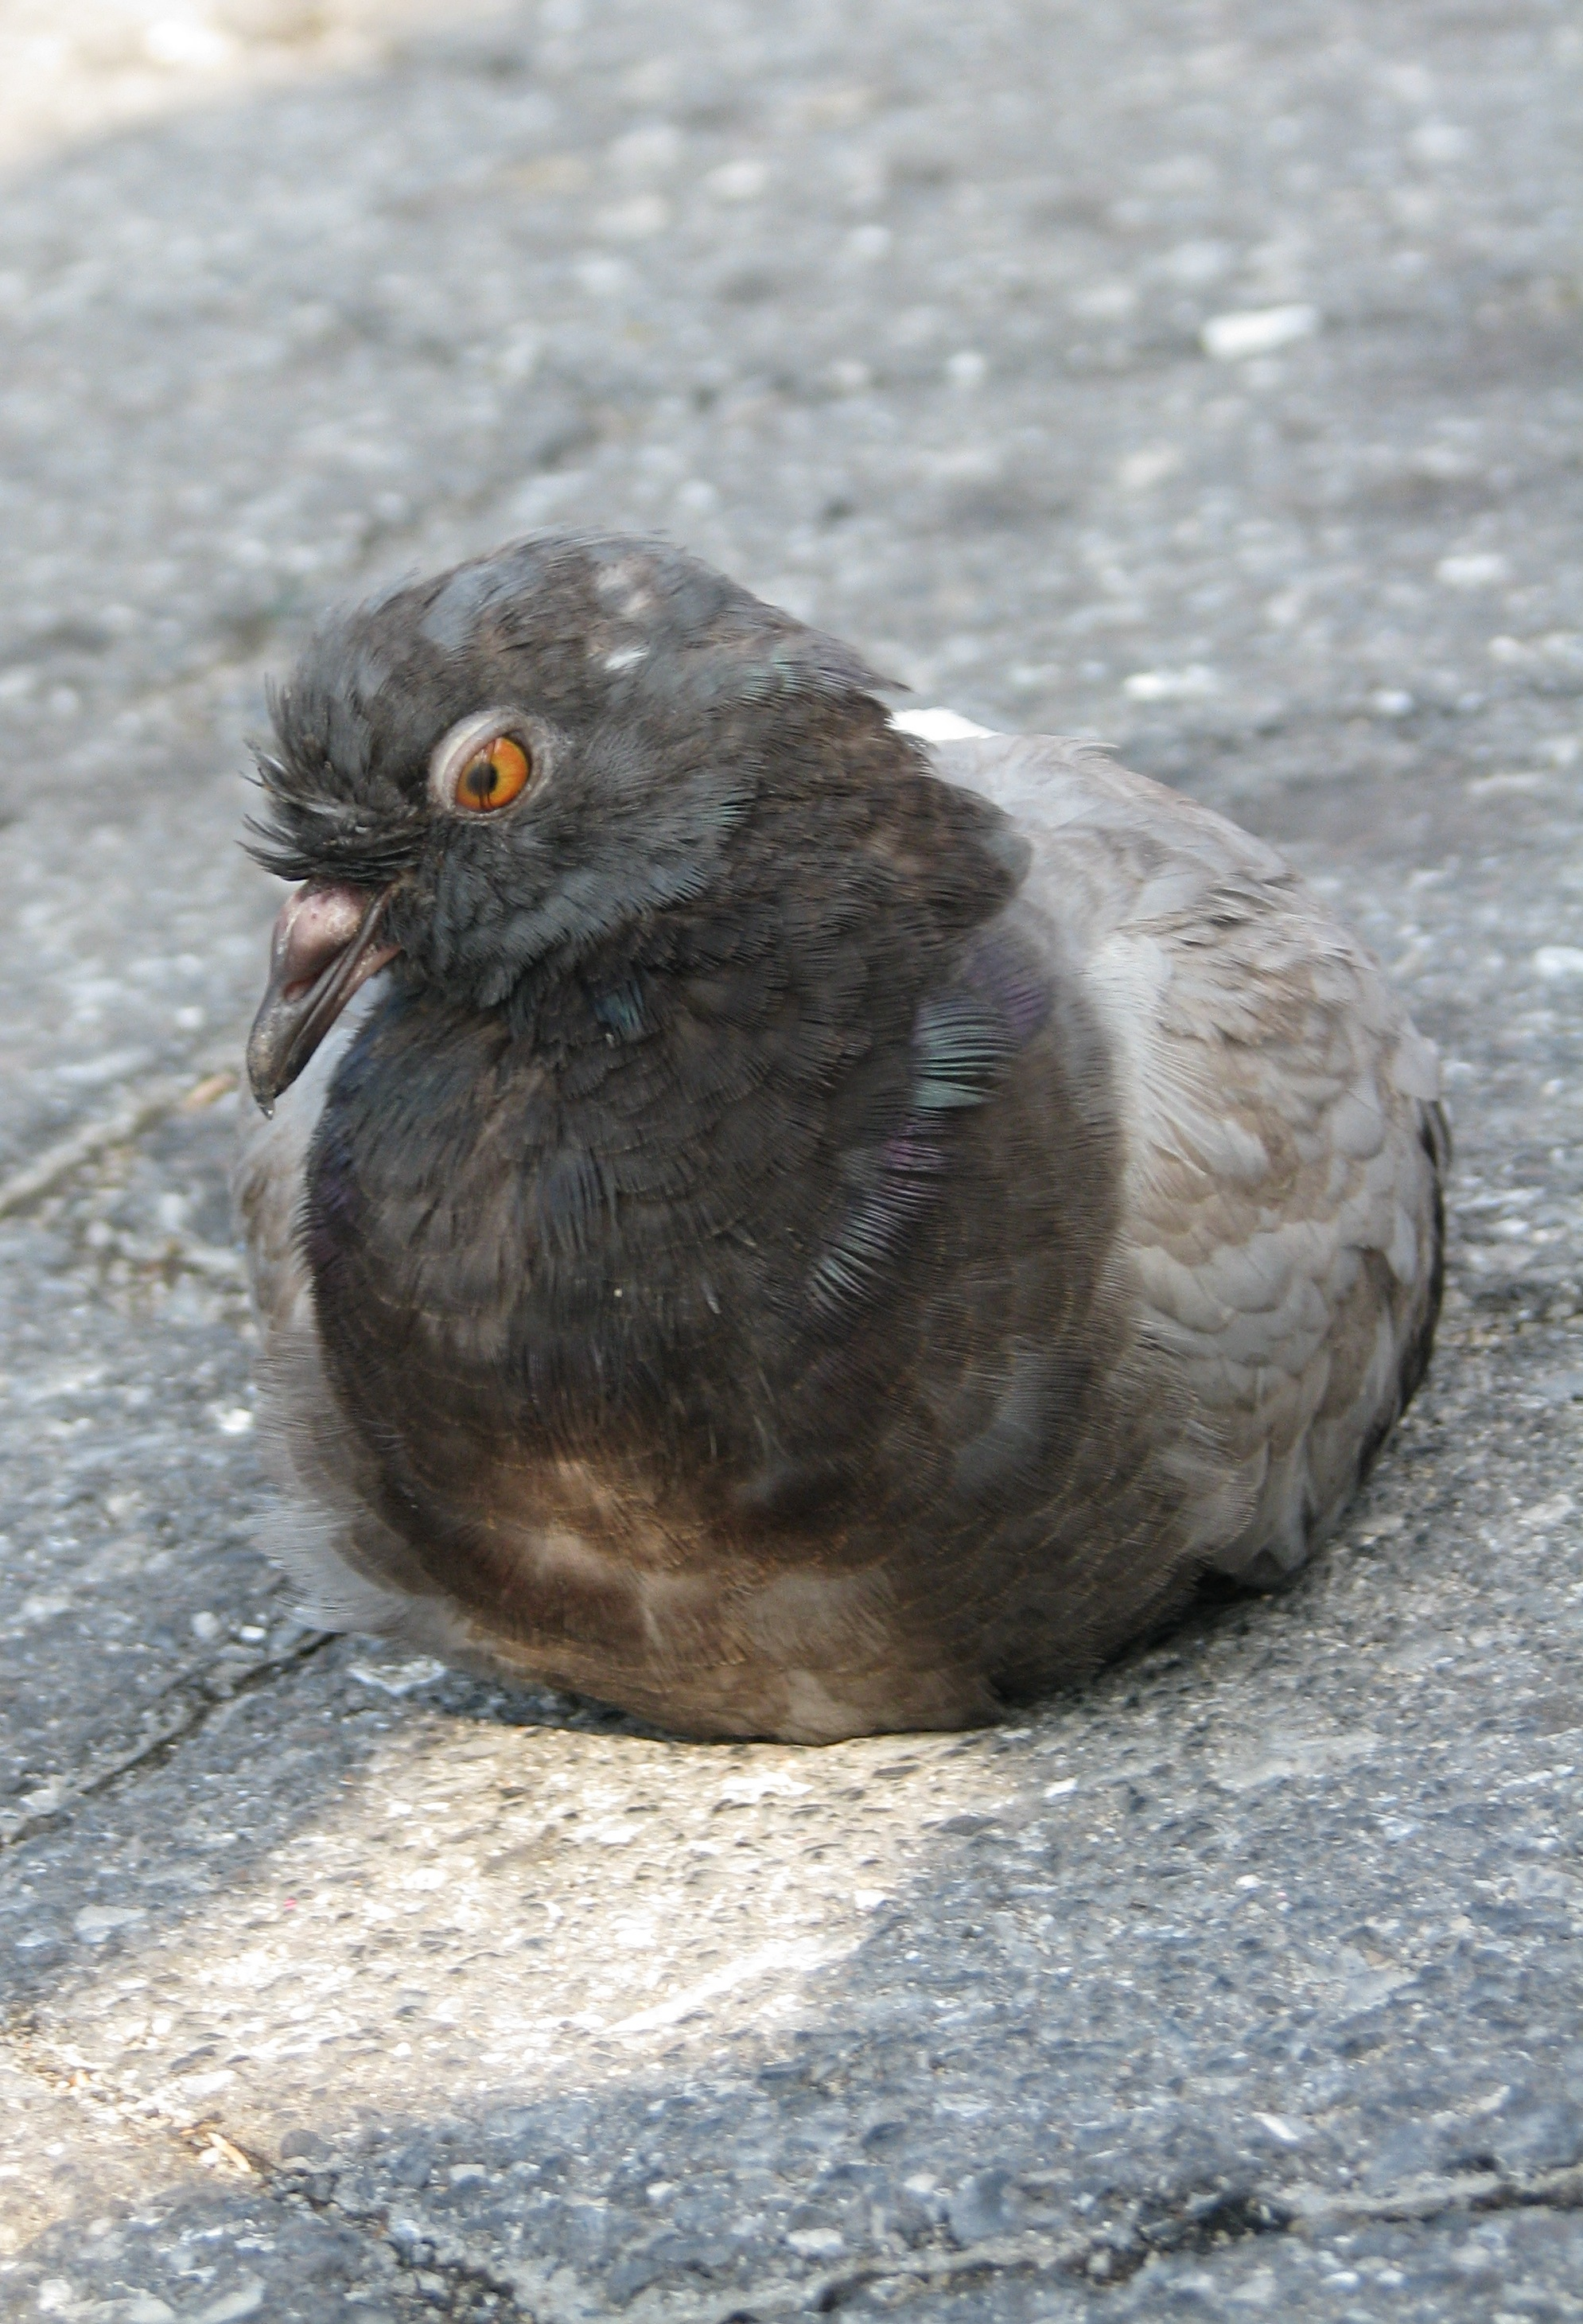 Angry Union Square Pigeon